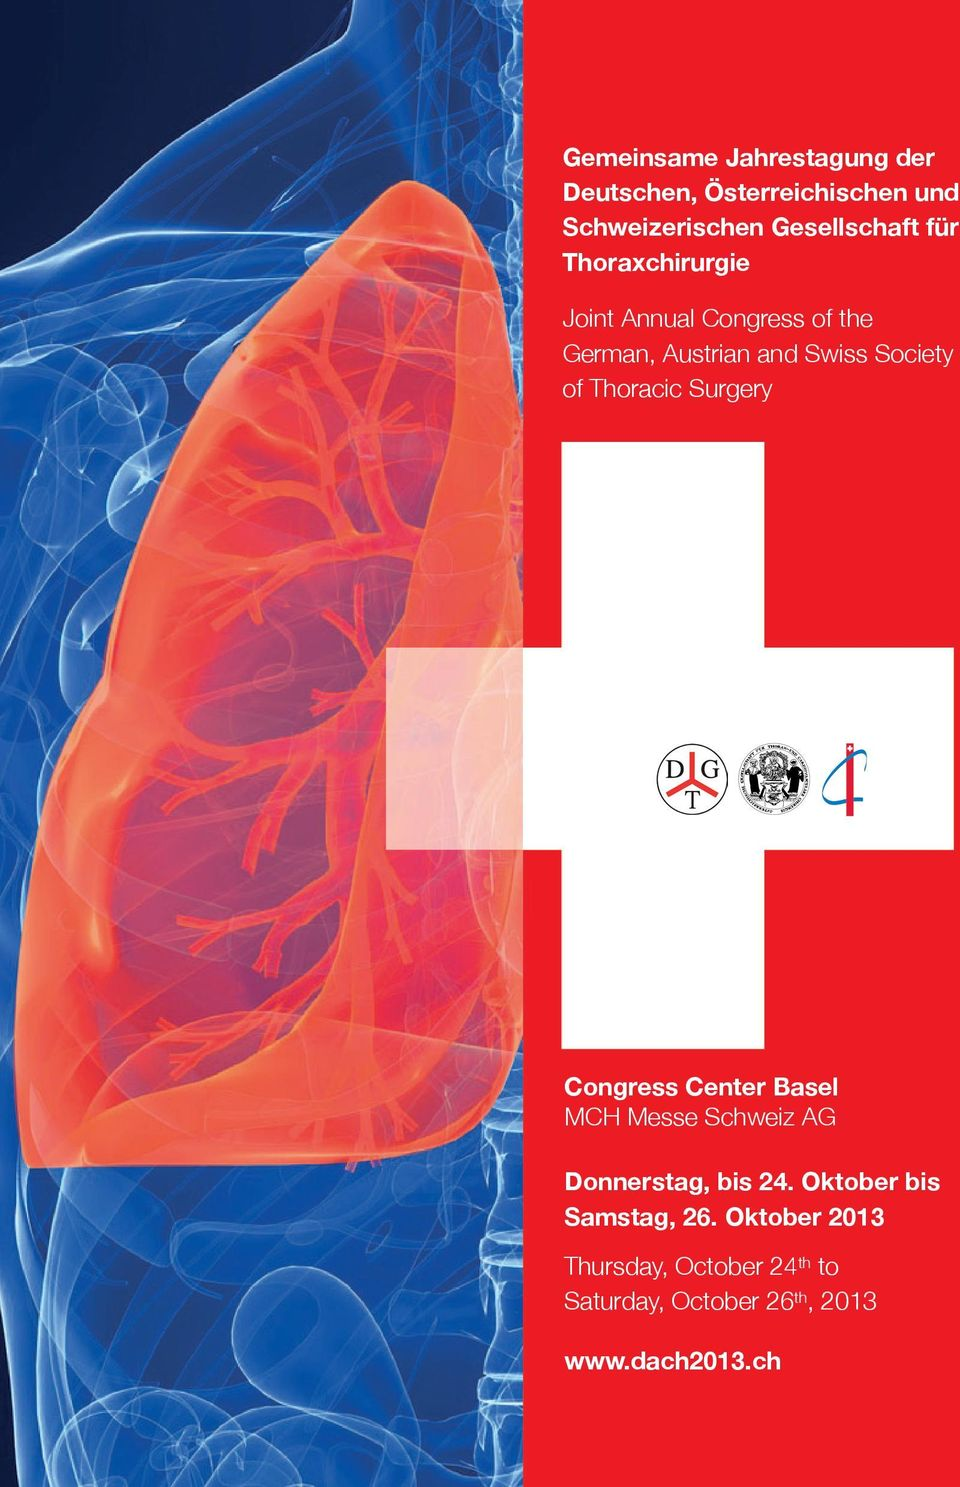 Thoracic Surgery Congress Center Basel MCH Messe Schweiz AG Donnerstag, bis 24.